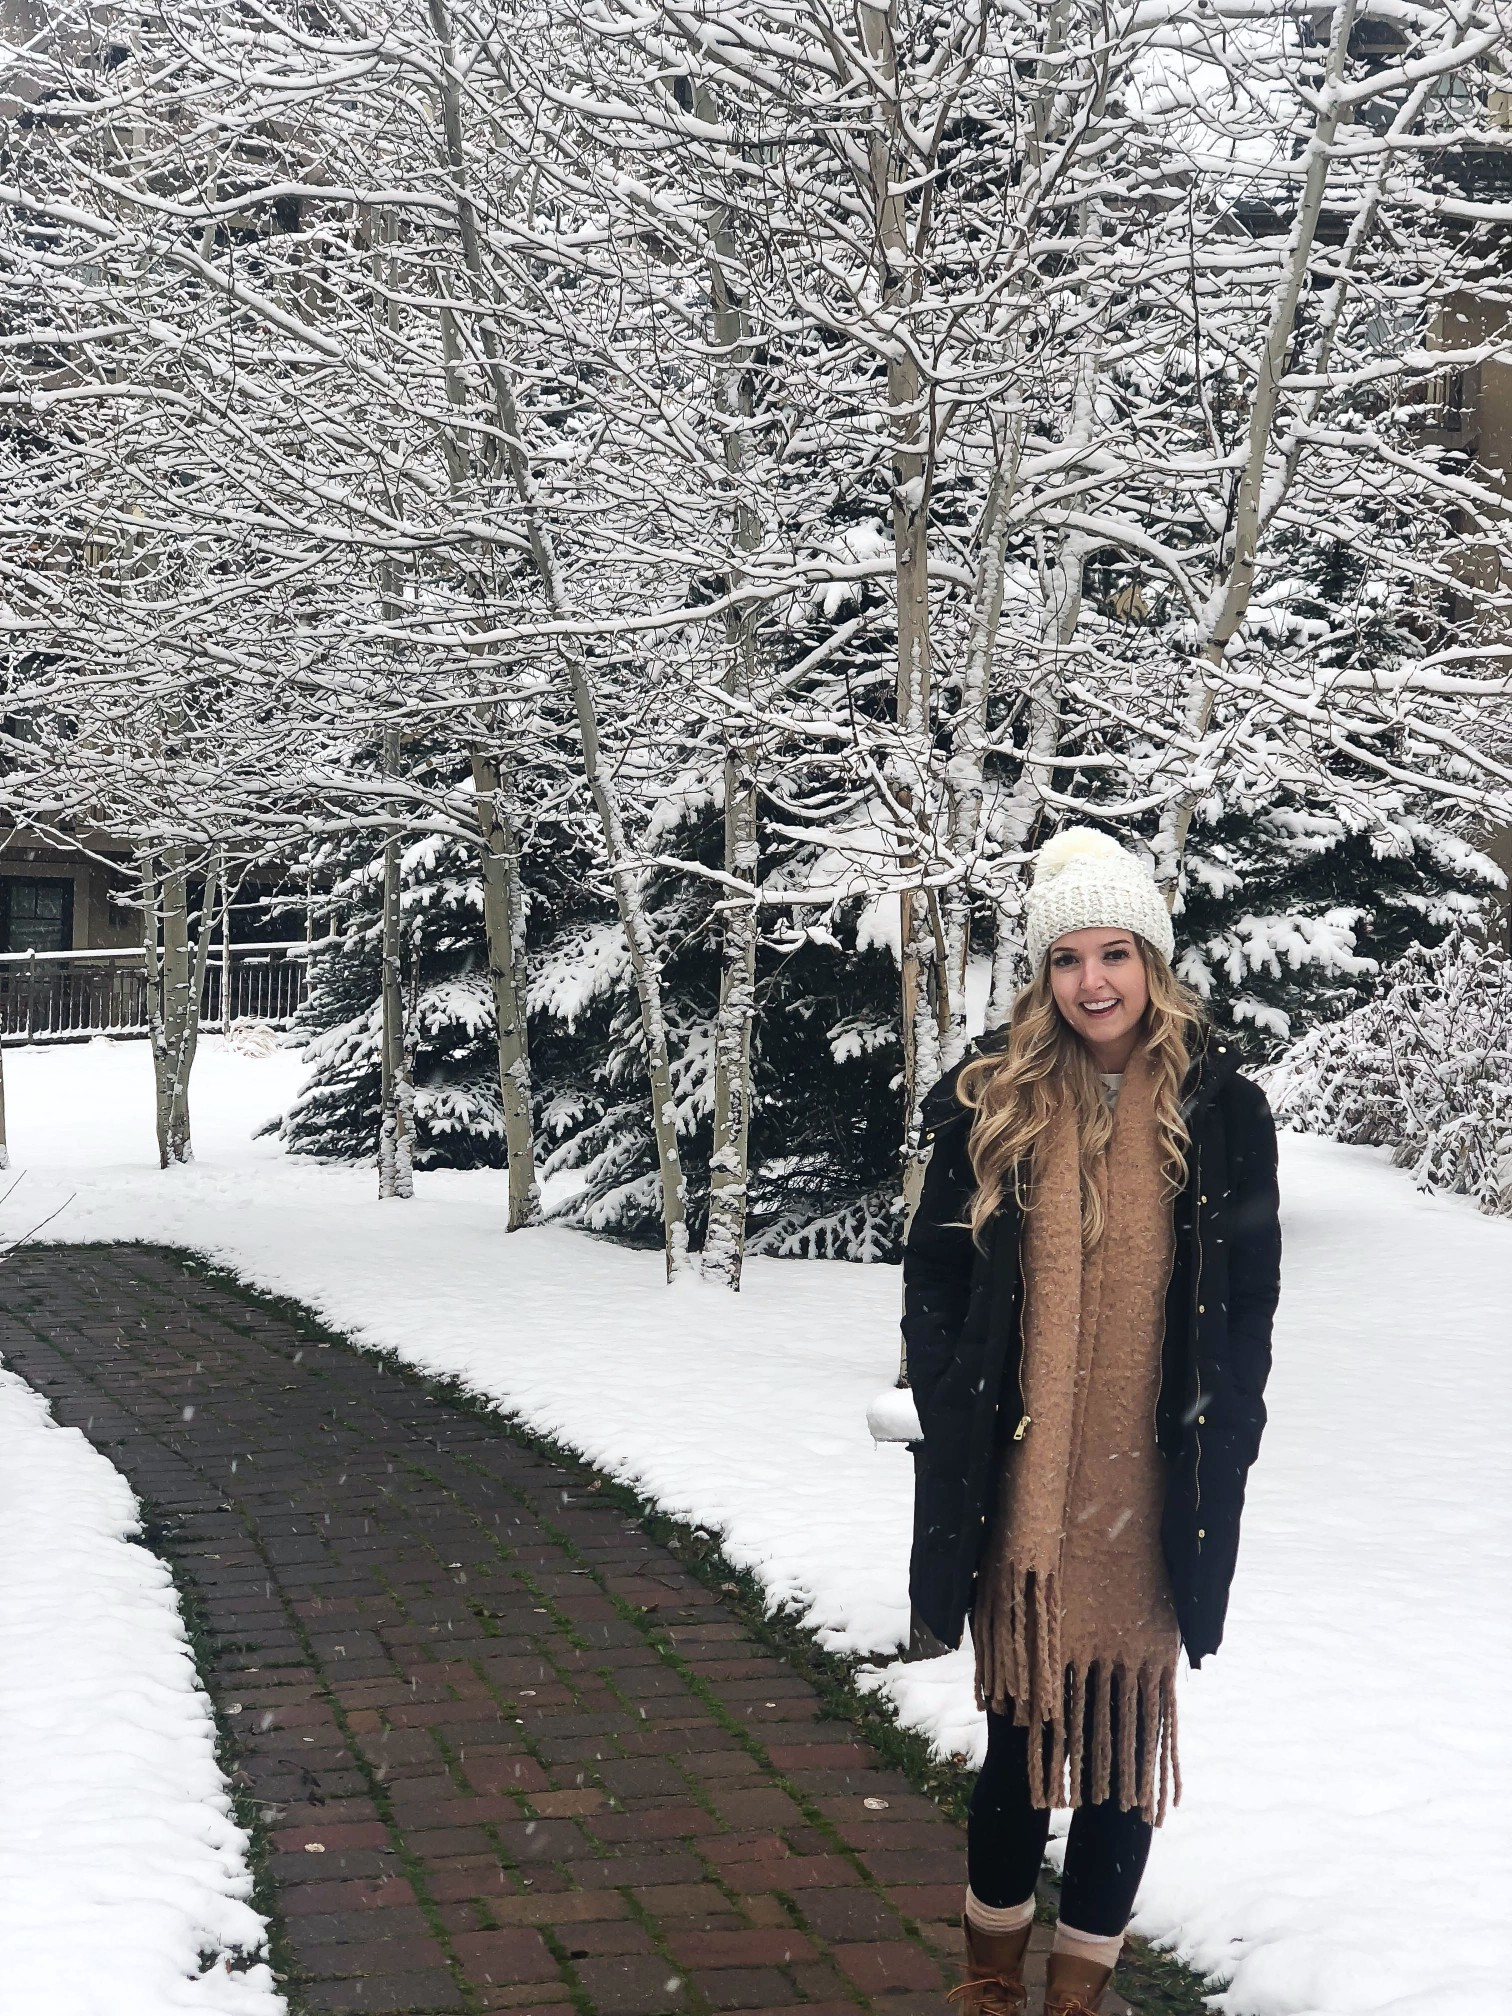 What I wore in Vail! Went to Vail, Colorado last weekend for a wedding so I wanted to share my everyday Colorado outfits and my wedding arrive! We went in November and it was beautiful and snowy! Details on fashion blog daily dos of charm by lauren lindmark